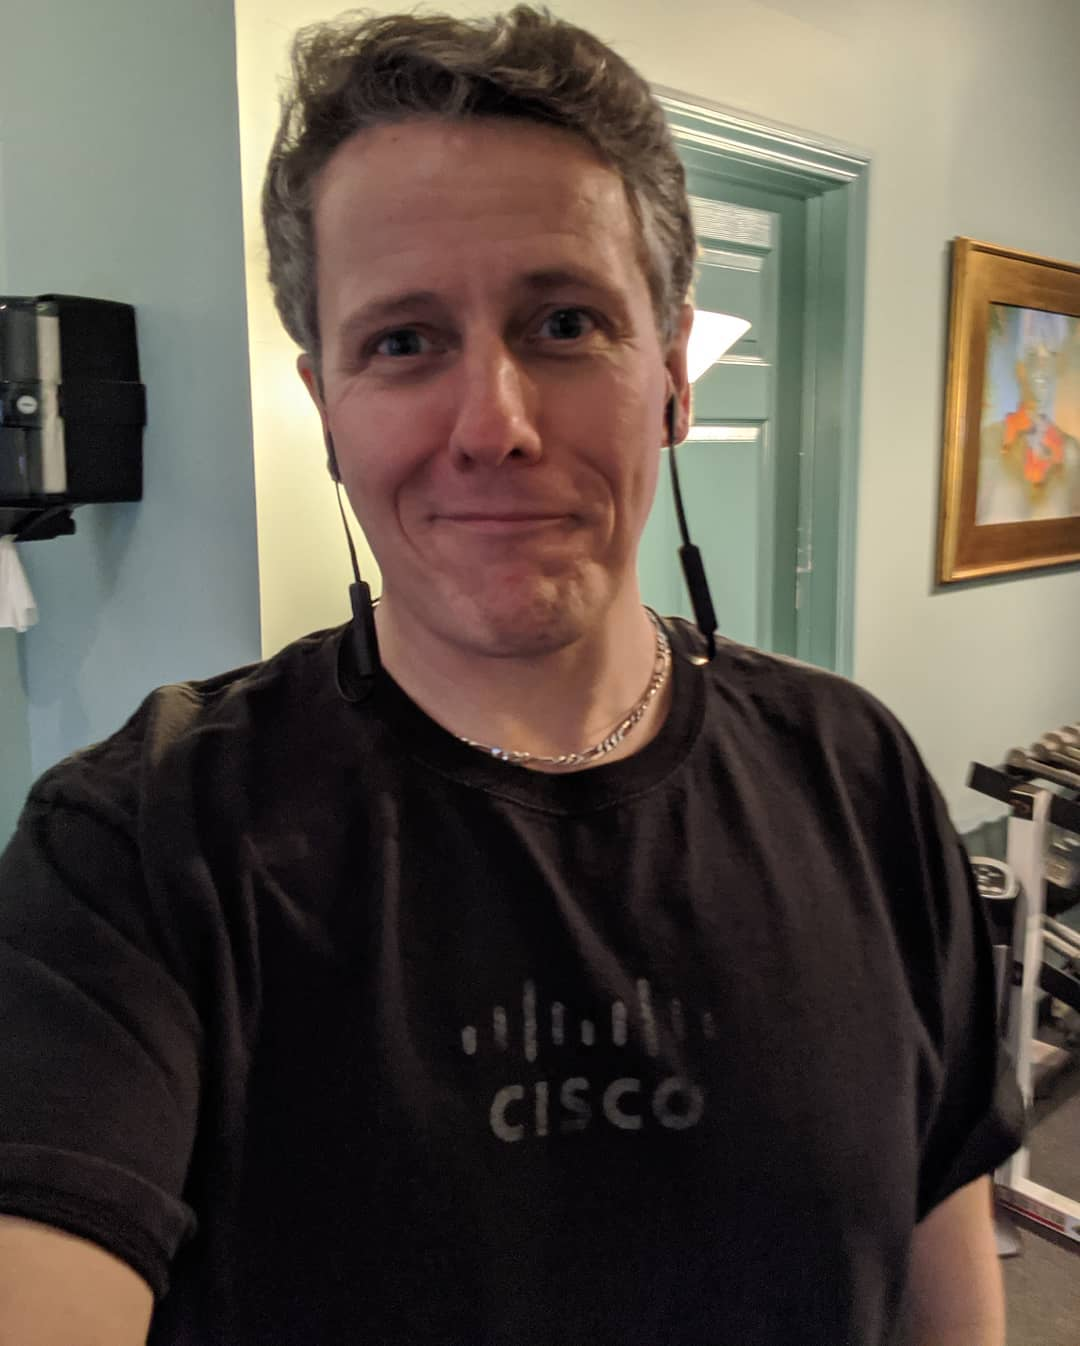 Me at the gym in my Cisco shirt. It's faded and ill-fitting… Sort of like Cisco…